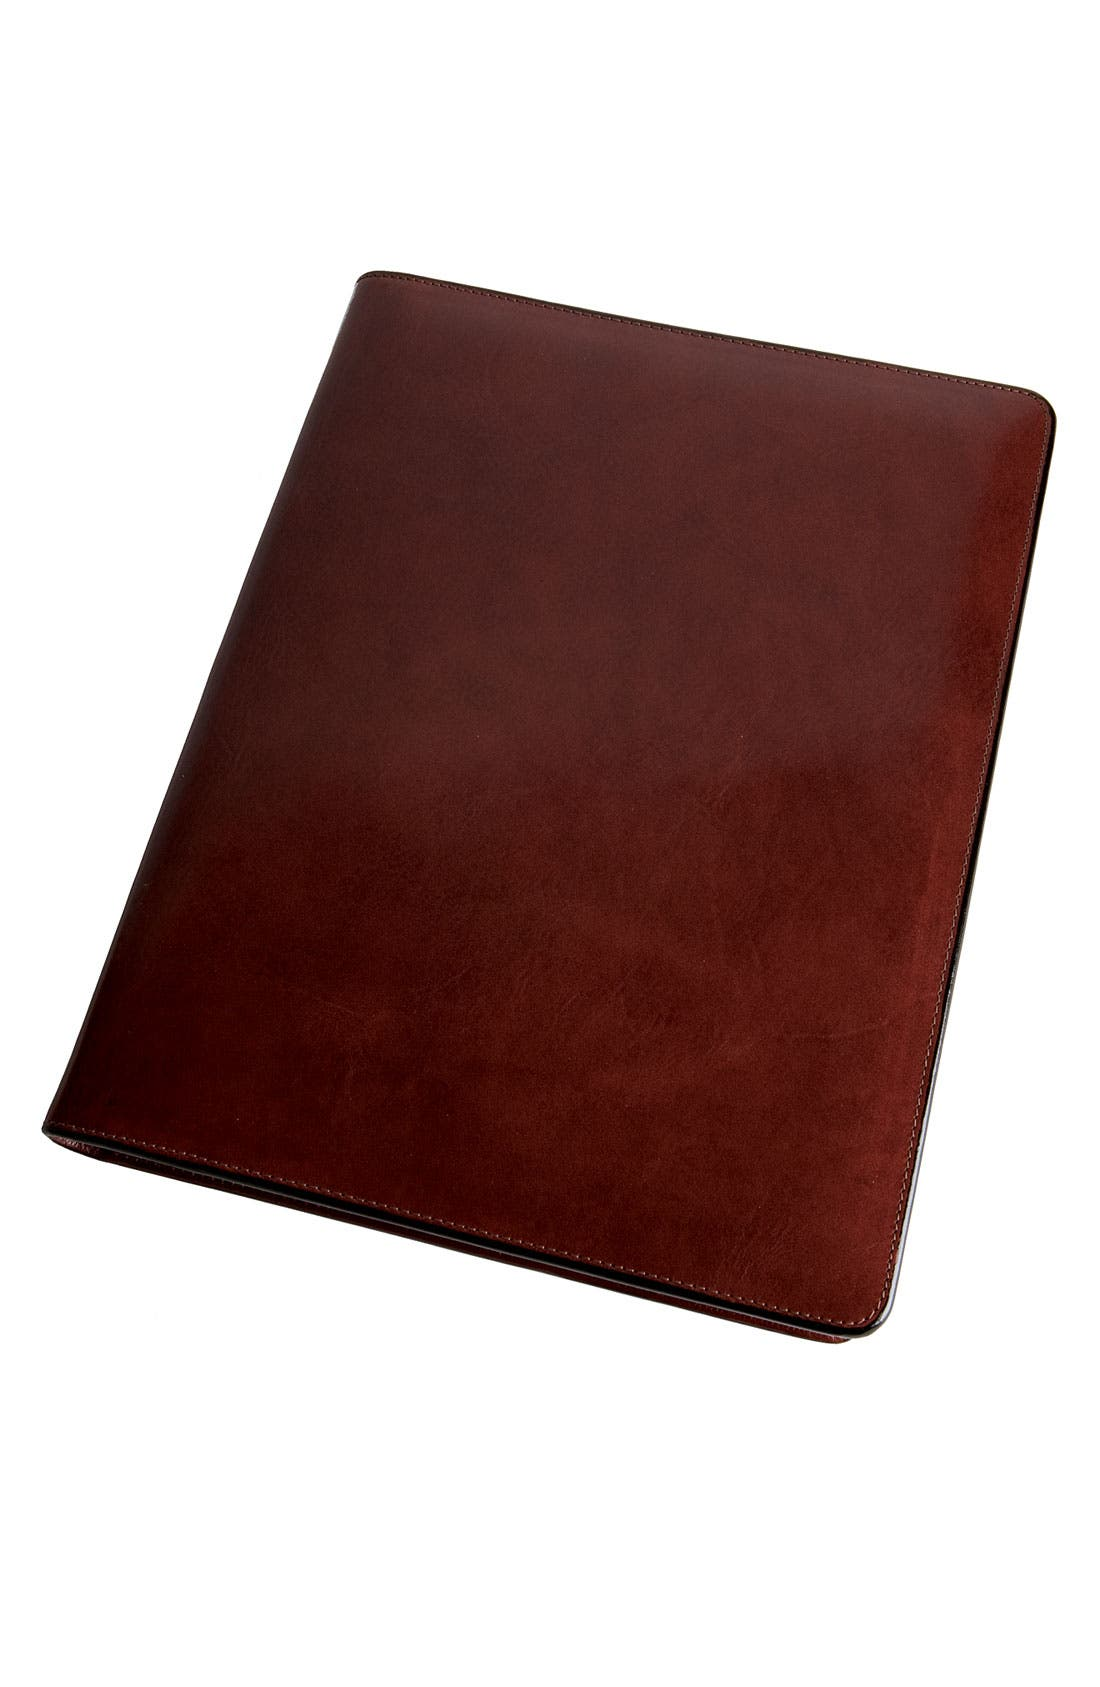 Leather Letter Pad Cover,                             Main thumbnail 1, color,                             BROWN OLD LEATHER